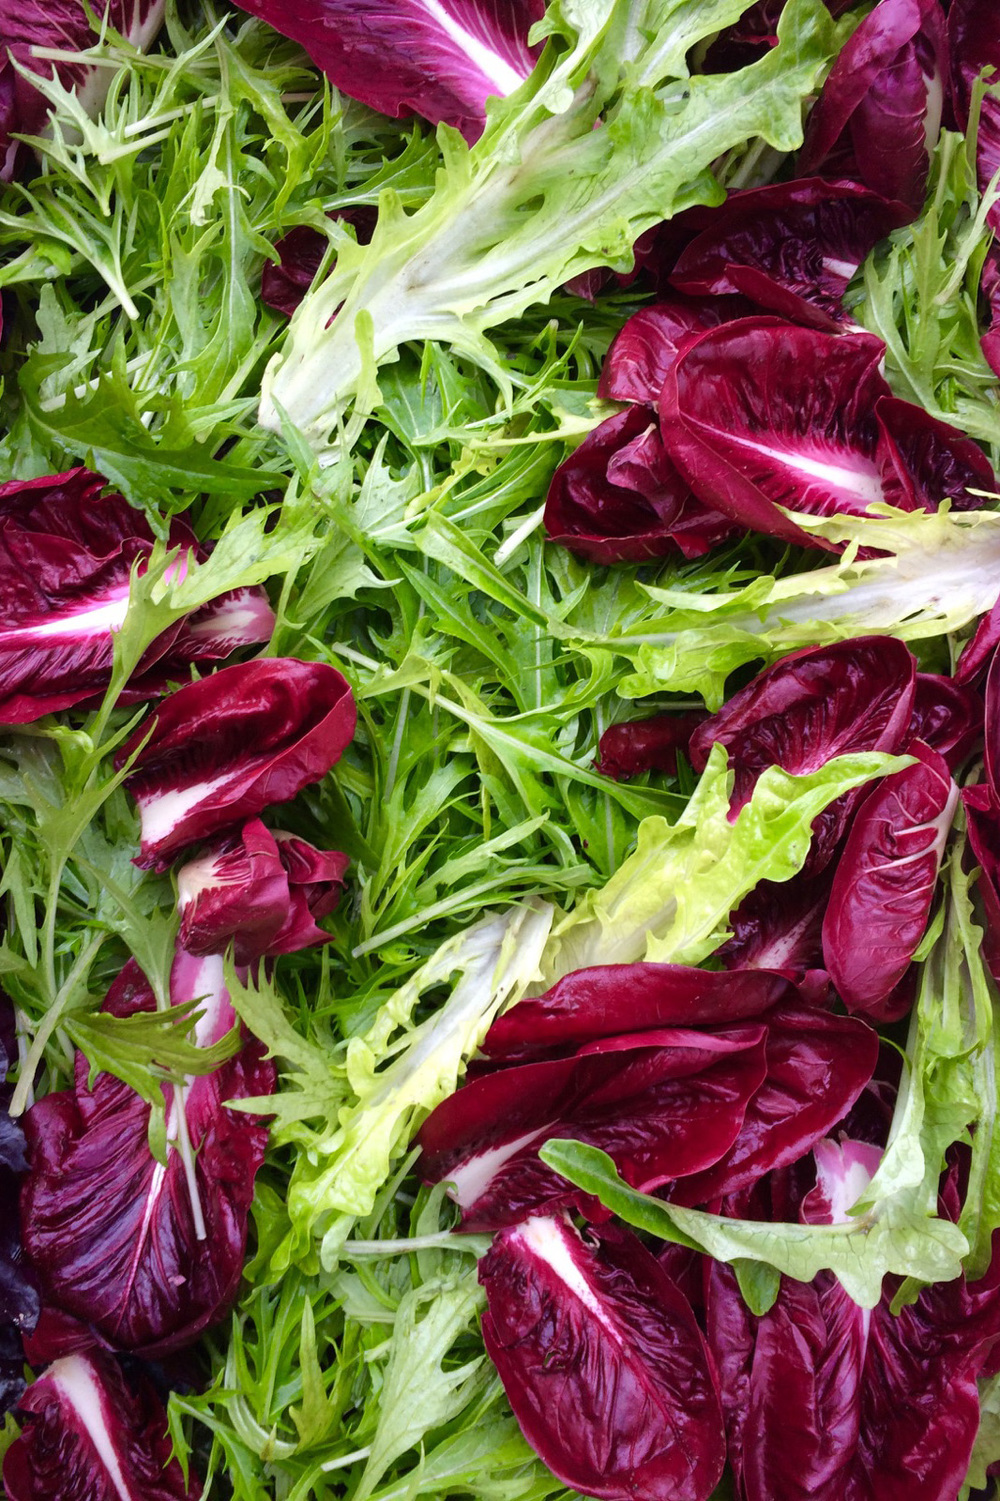 Winter salad mix featuring Treviso radicchio, Dark Lollo Rosso lettuce, mizuna, frisée, Bull's Blood beet greens & Monk's Beard leaf lettuce.